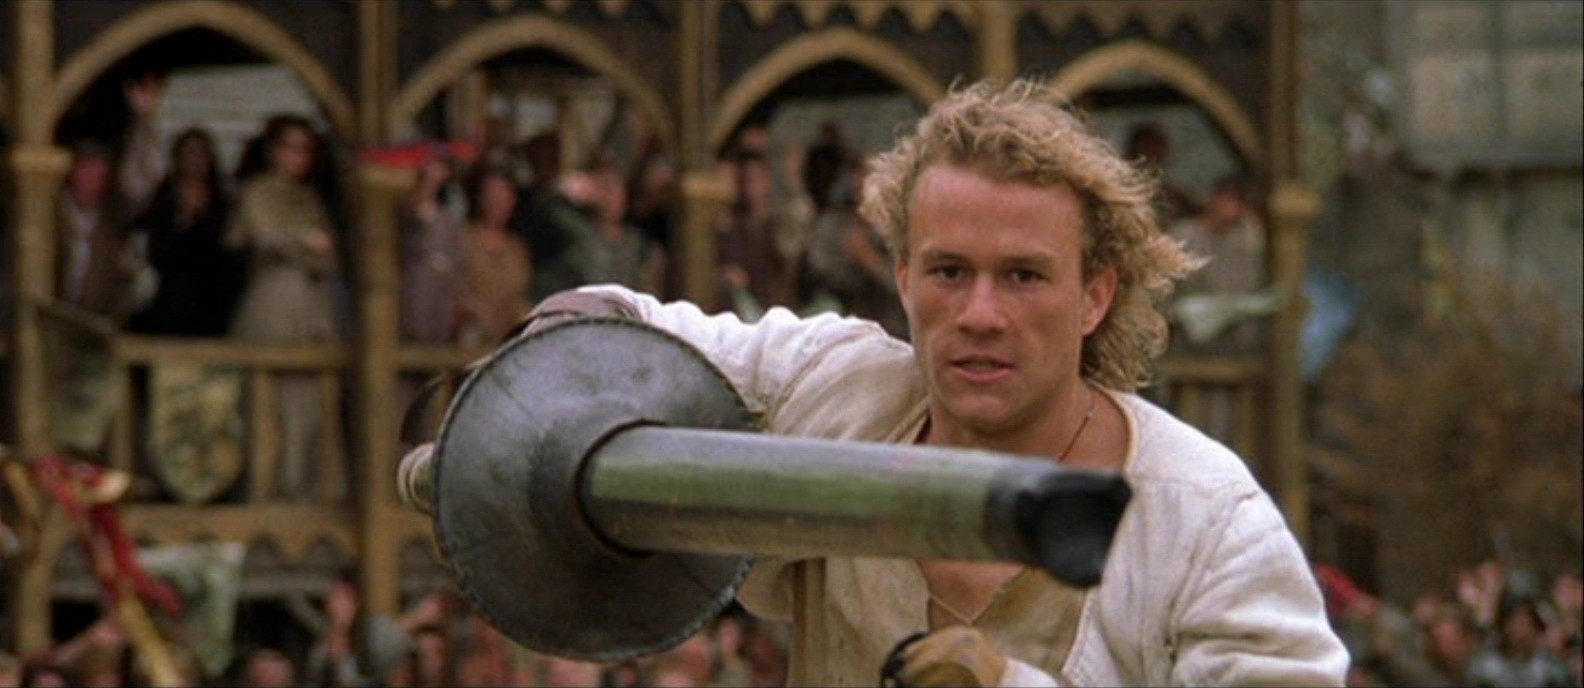 A Knight's Tale shows us what true love is   by Robert Heckert   Medium